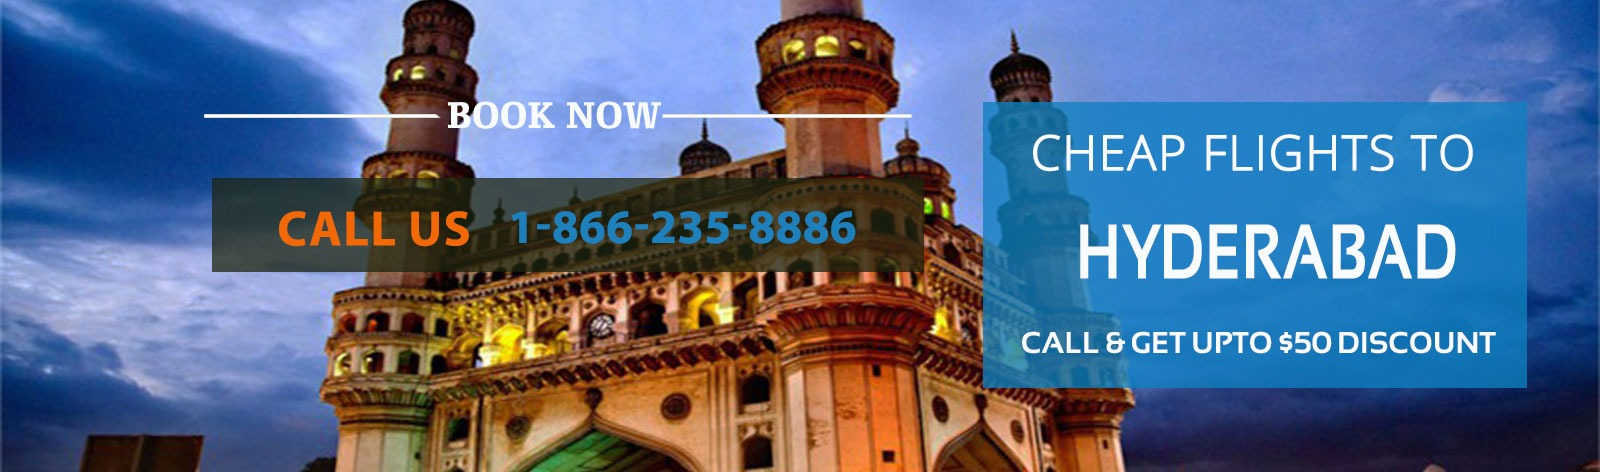 Flights From US To Hyderabad